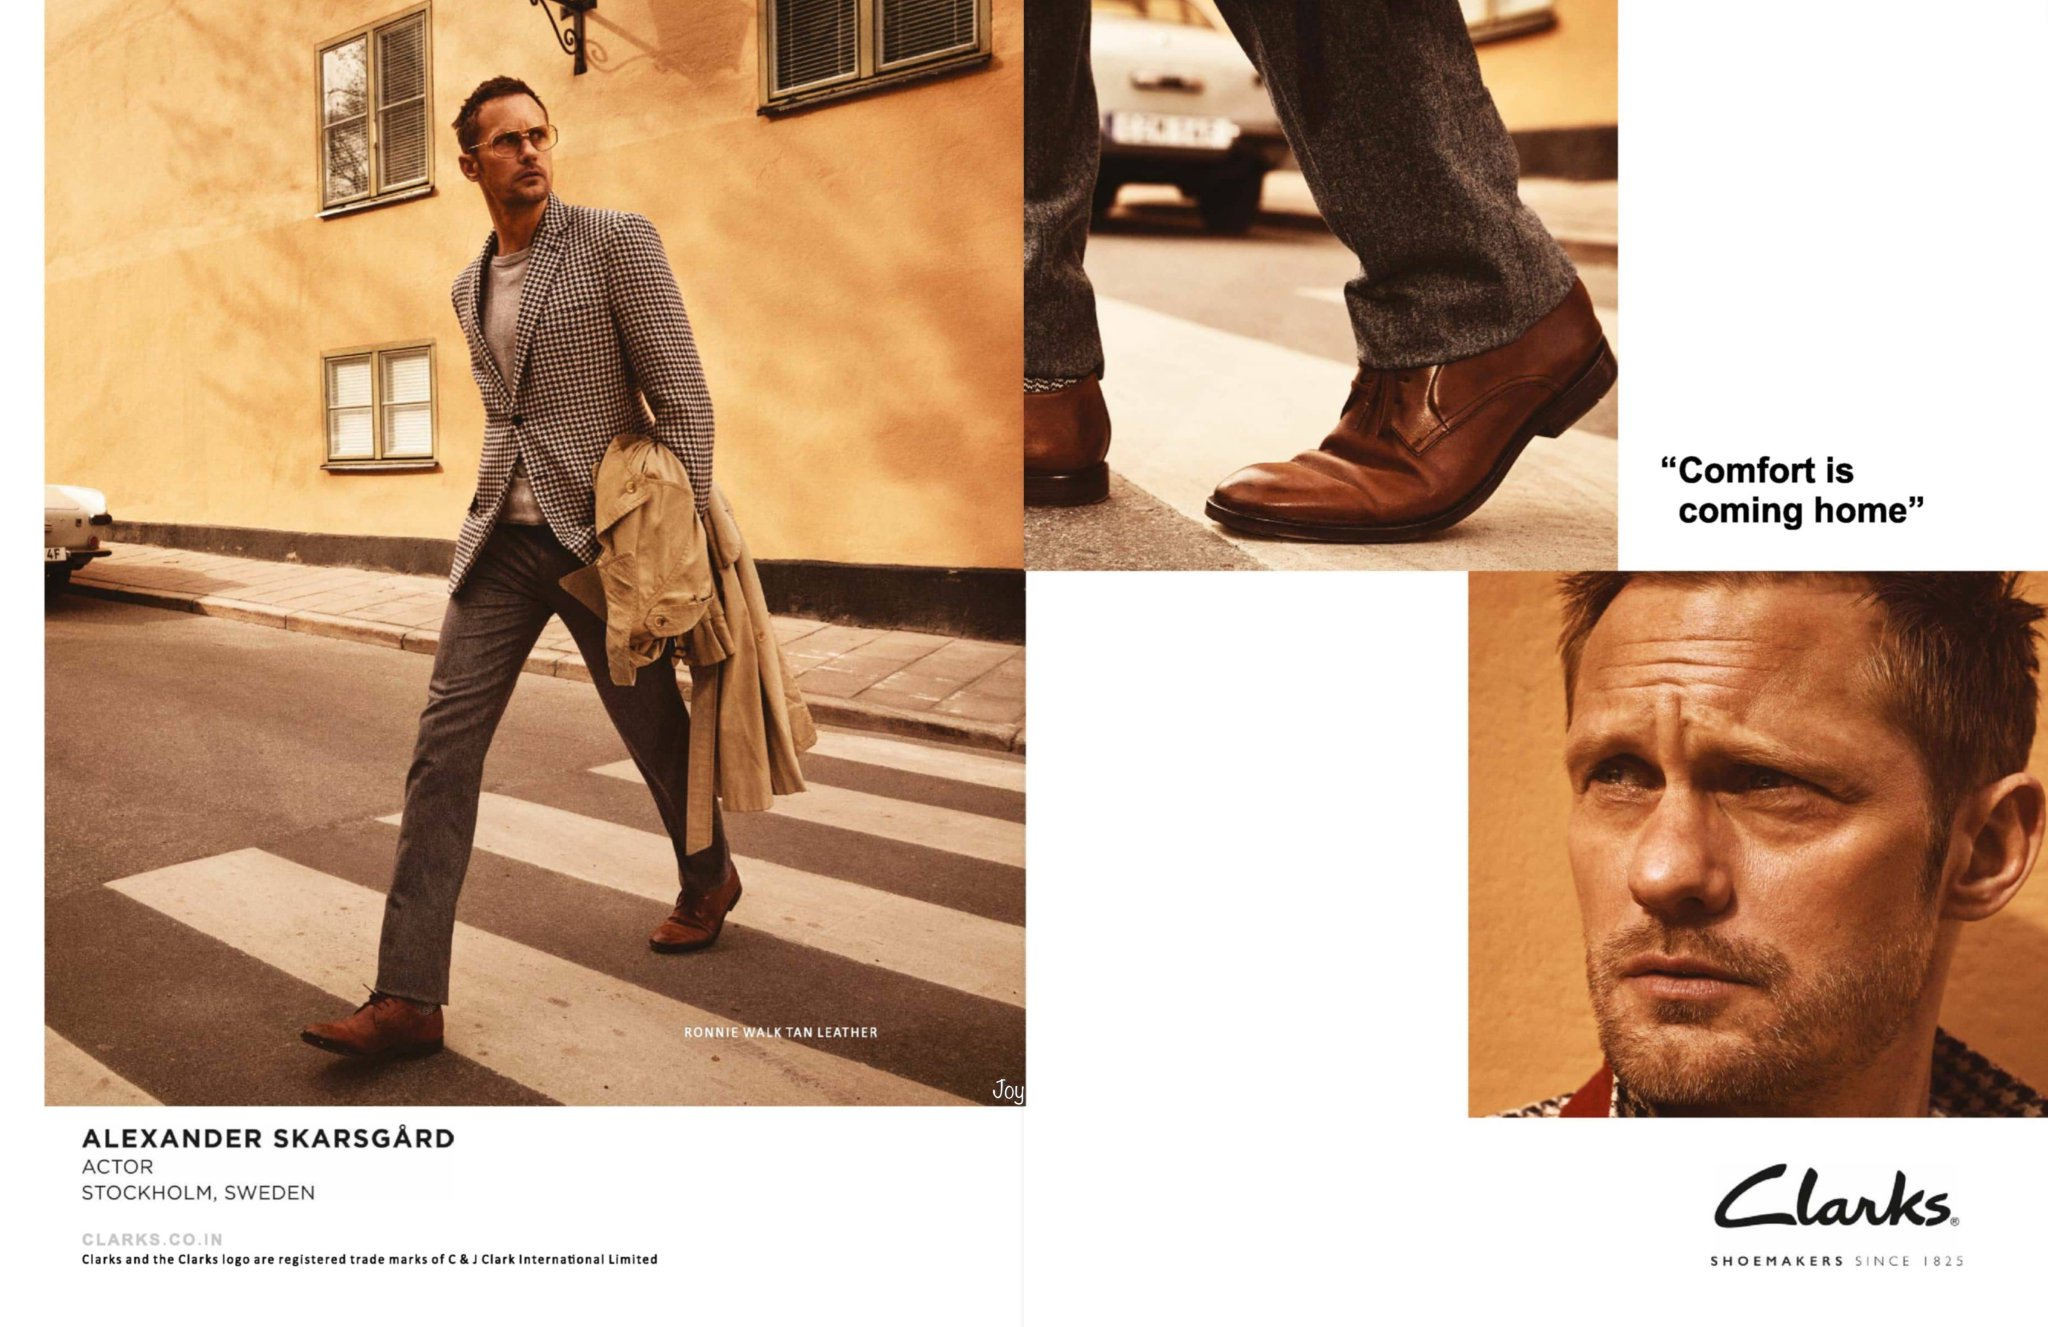 Alexanderskarsgard Archive On Twitter New Version Of The Clarksshoes Fall Winter 2019 Campaign Ads Of Alexander Skarsgard In The December 2019 Issue Of Gqindia Photos By Mikael Jansson Clarks Ronniewalk Alexanderskarsgard Https T Co